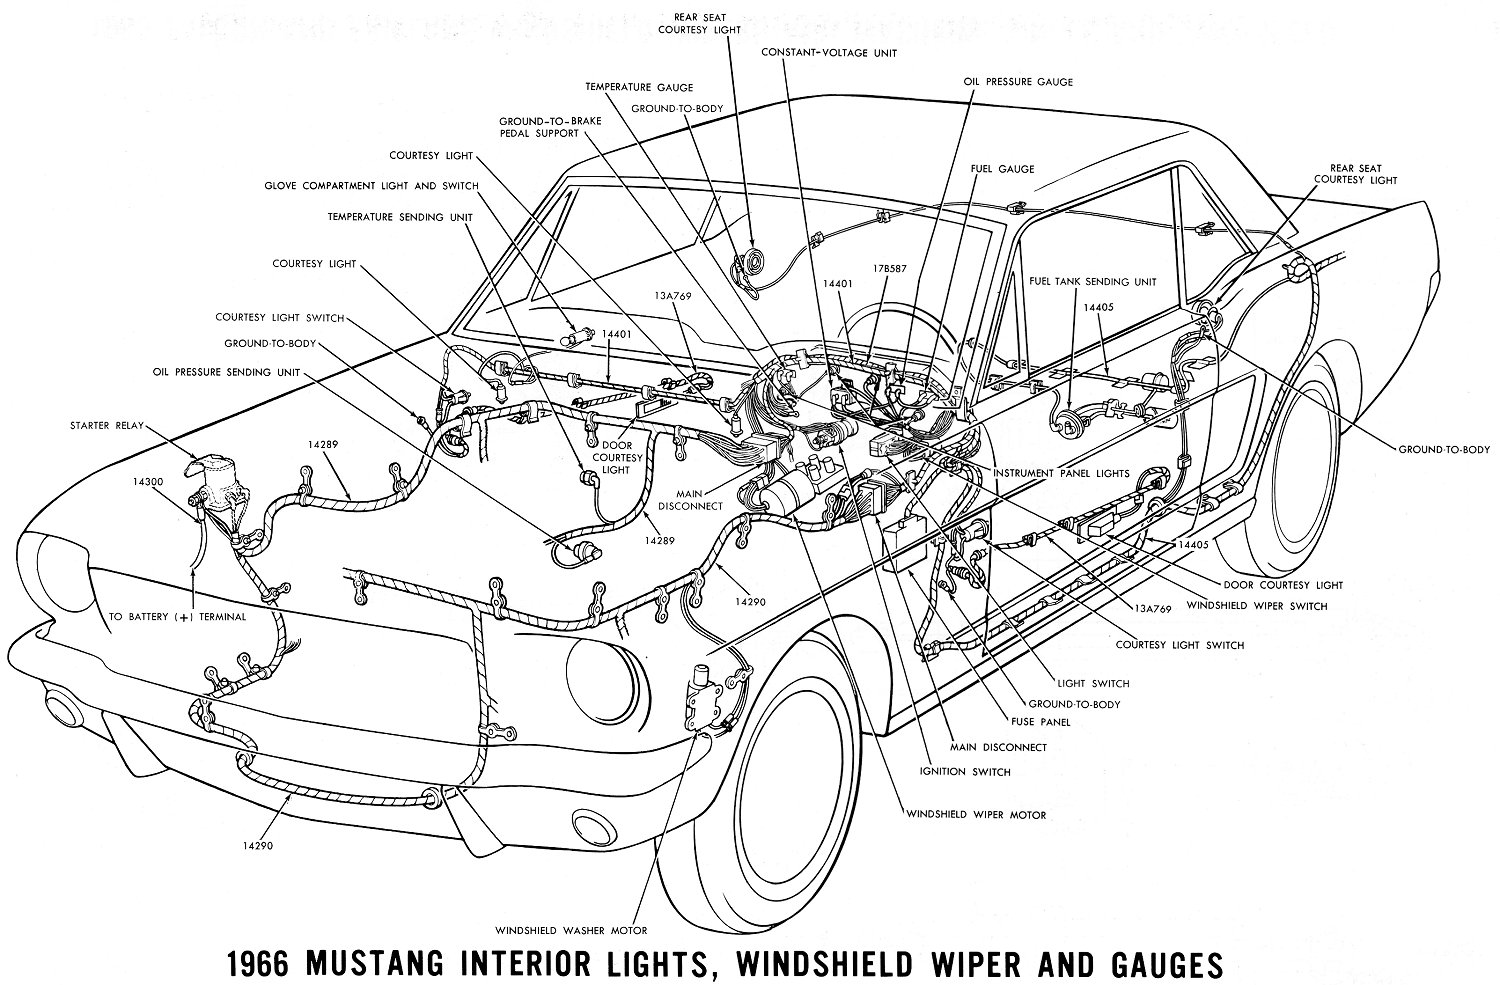 Pictures Mustang Documents 1964 Galaxie 500 Xl Wiring Diagram